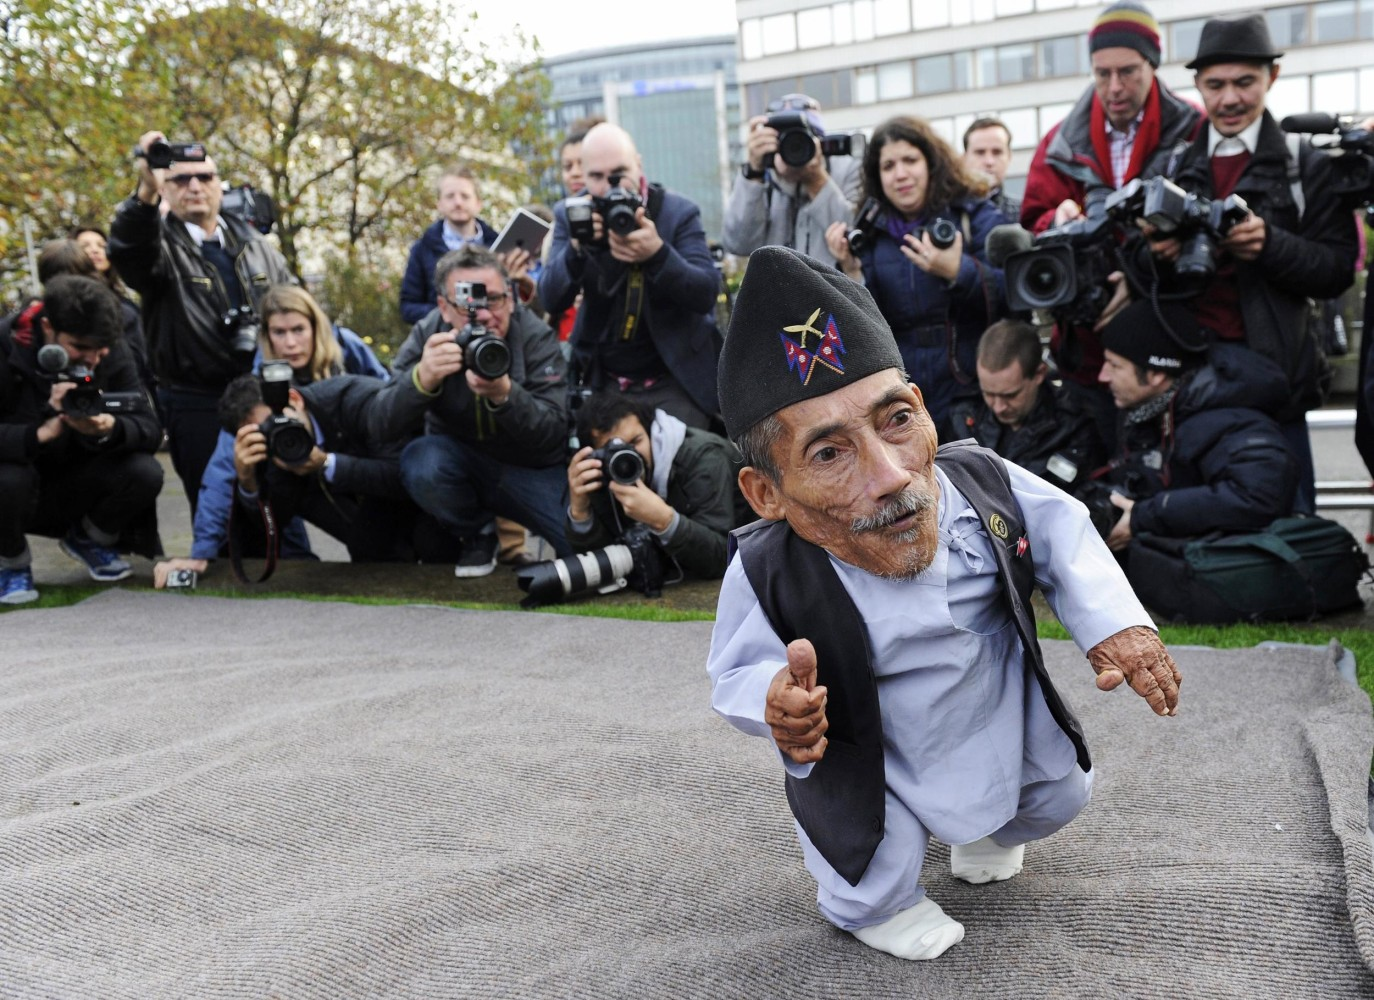 World's Smallest Man Meets World's Tallest - NBC News